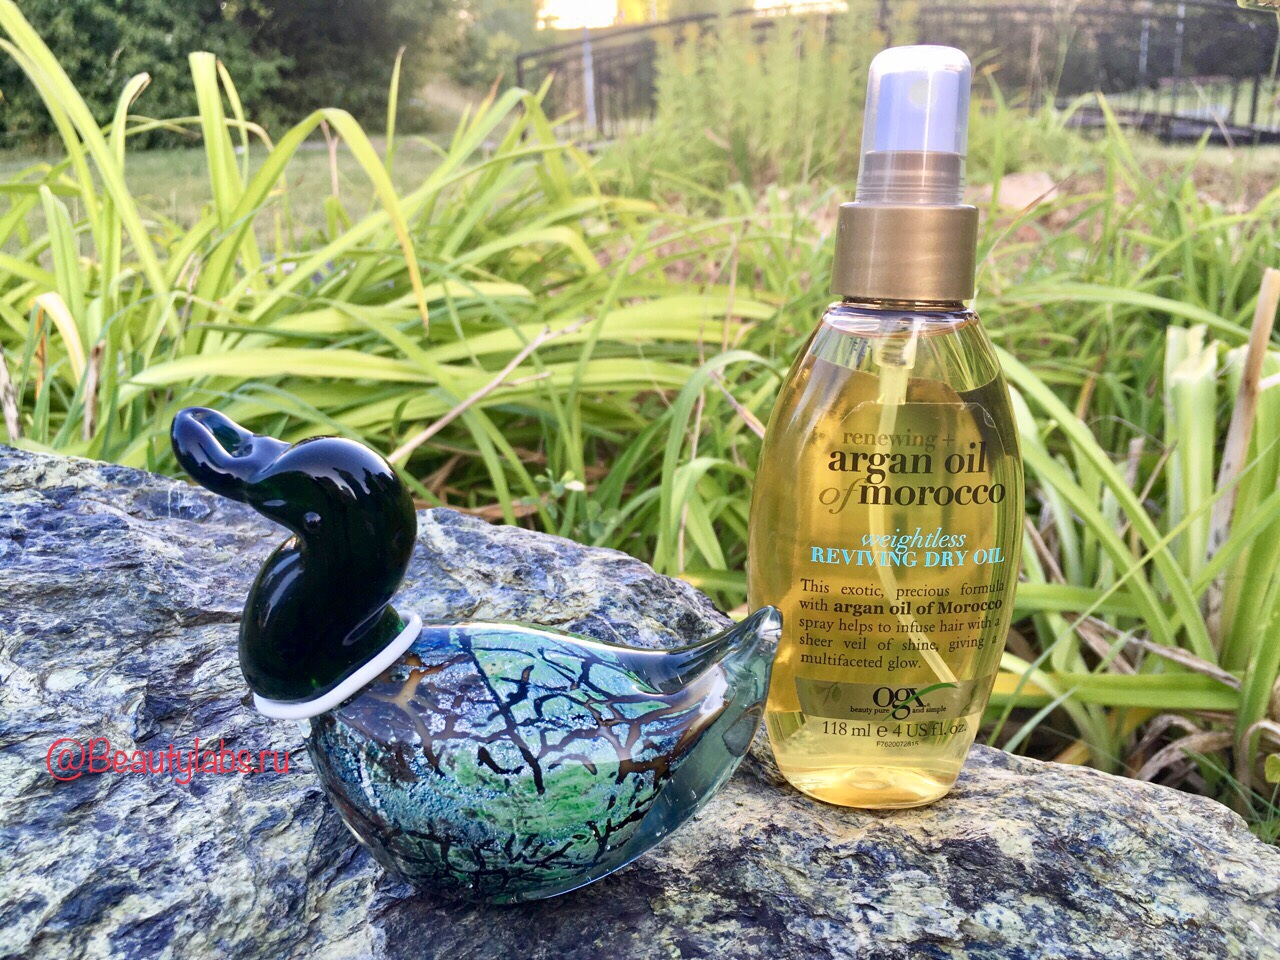 Масло для волос OGX Renewing Argan Oil of Morocco Weightless Reviving Dry Oil